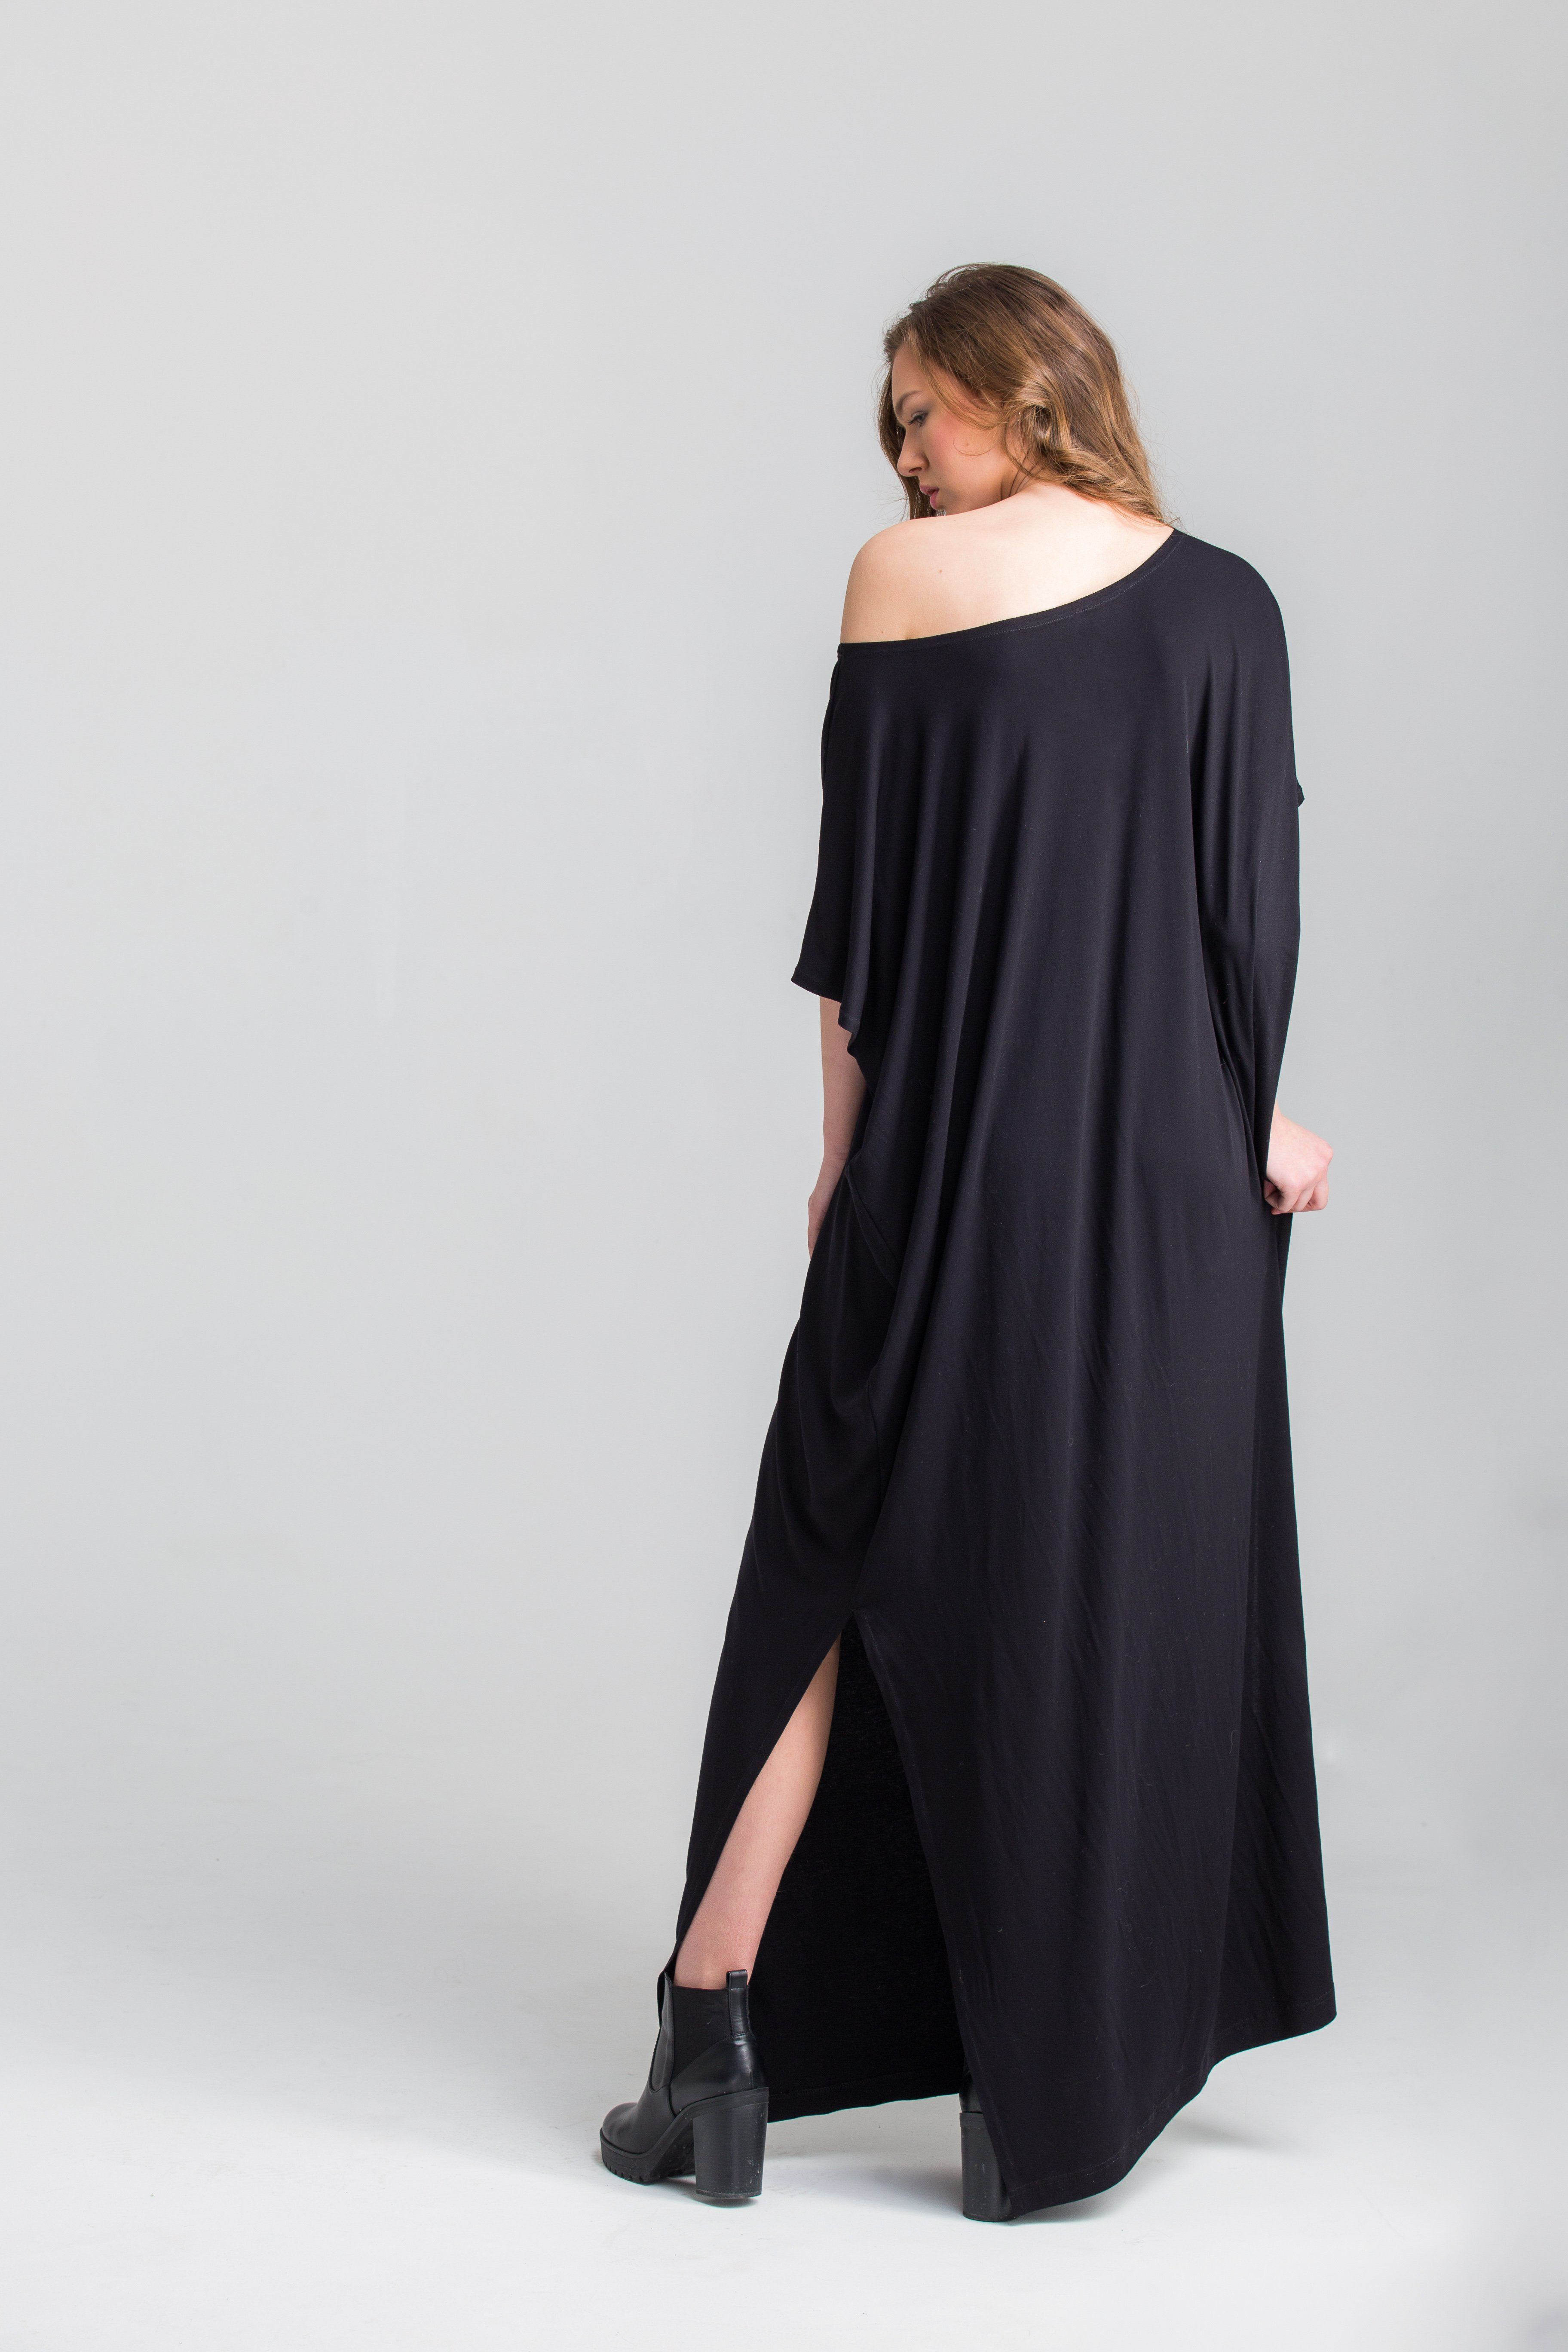 Oversized black maxi dress in oversized outfit pinterest